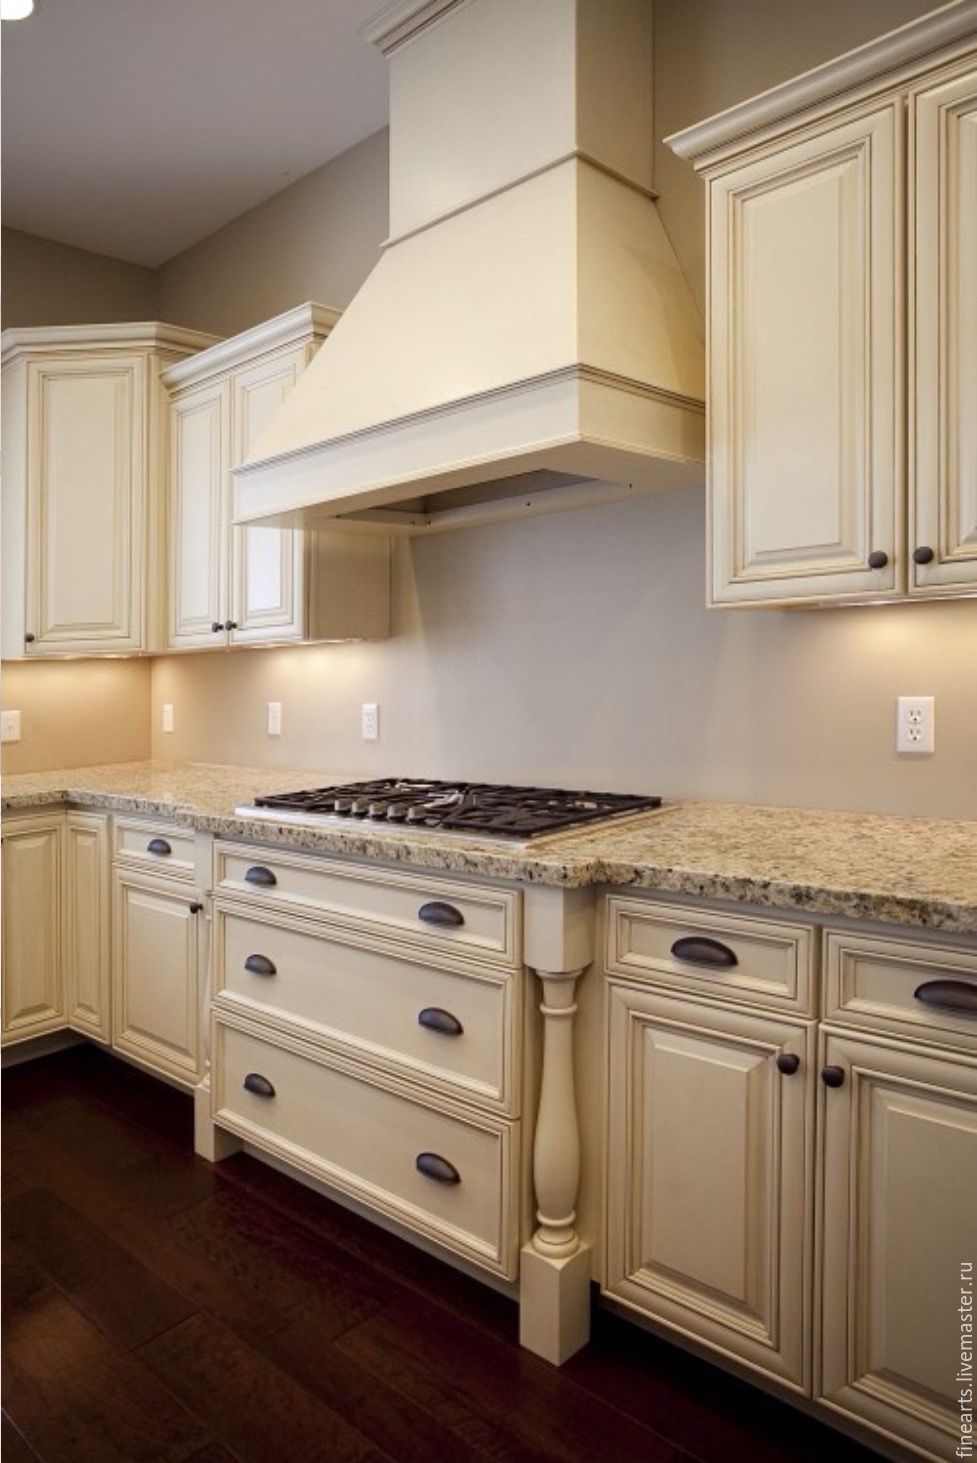 14 + Kitchen Cabinet Accessories Ideas (Tips on Selecting ...